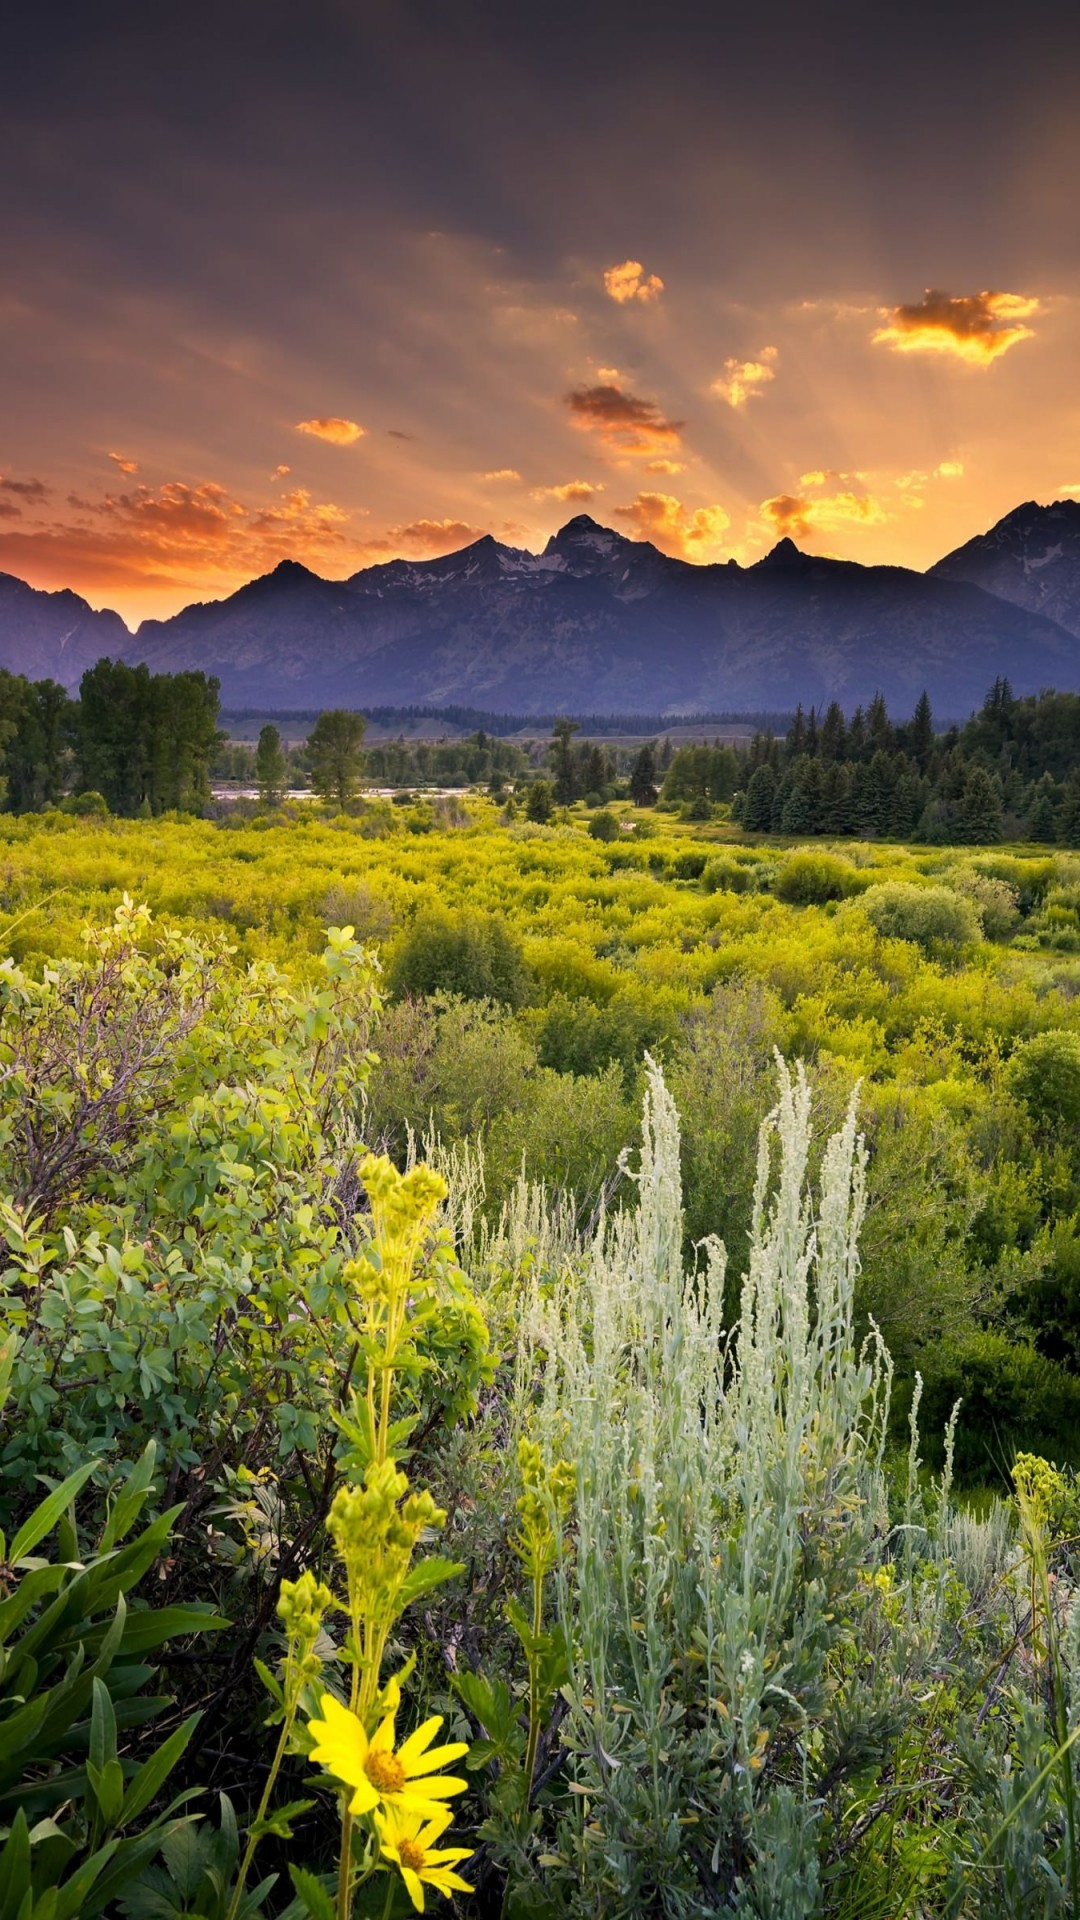 Sunset in Grand Teton National Park Wallpaper for Motorola Moto X